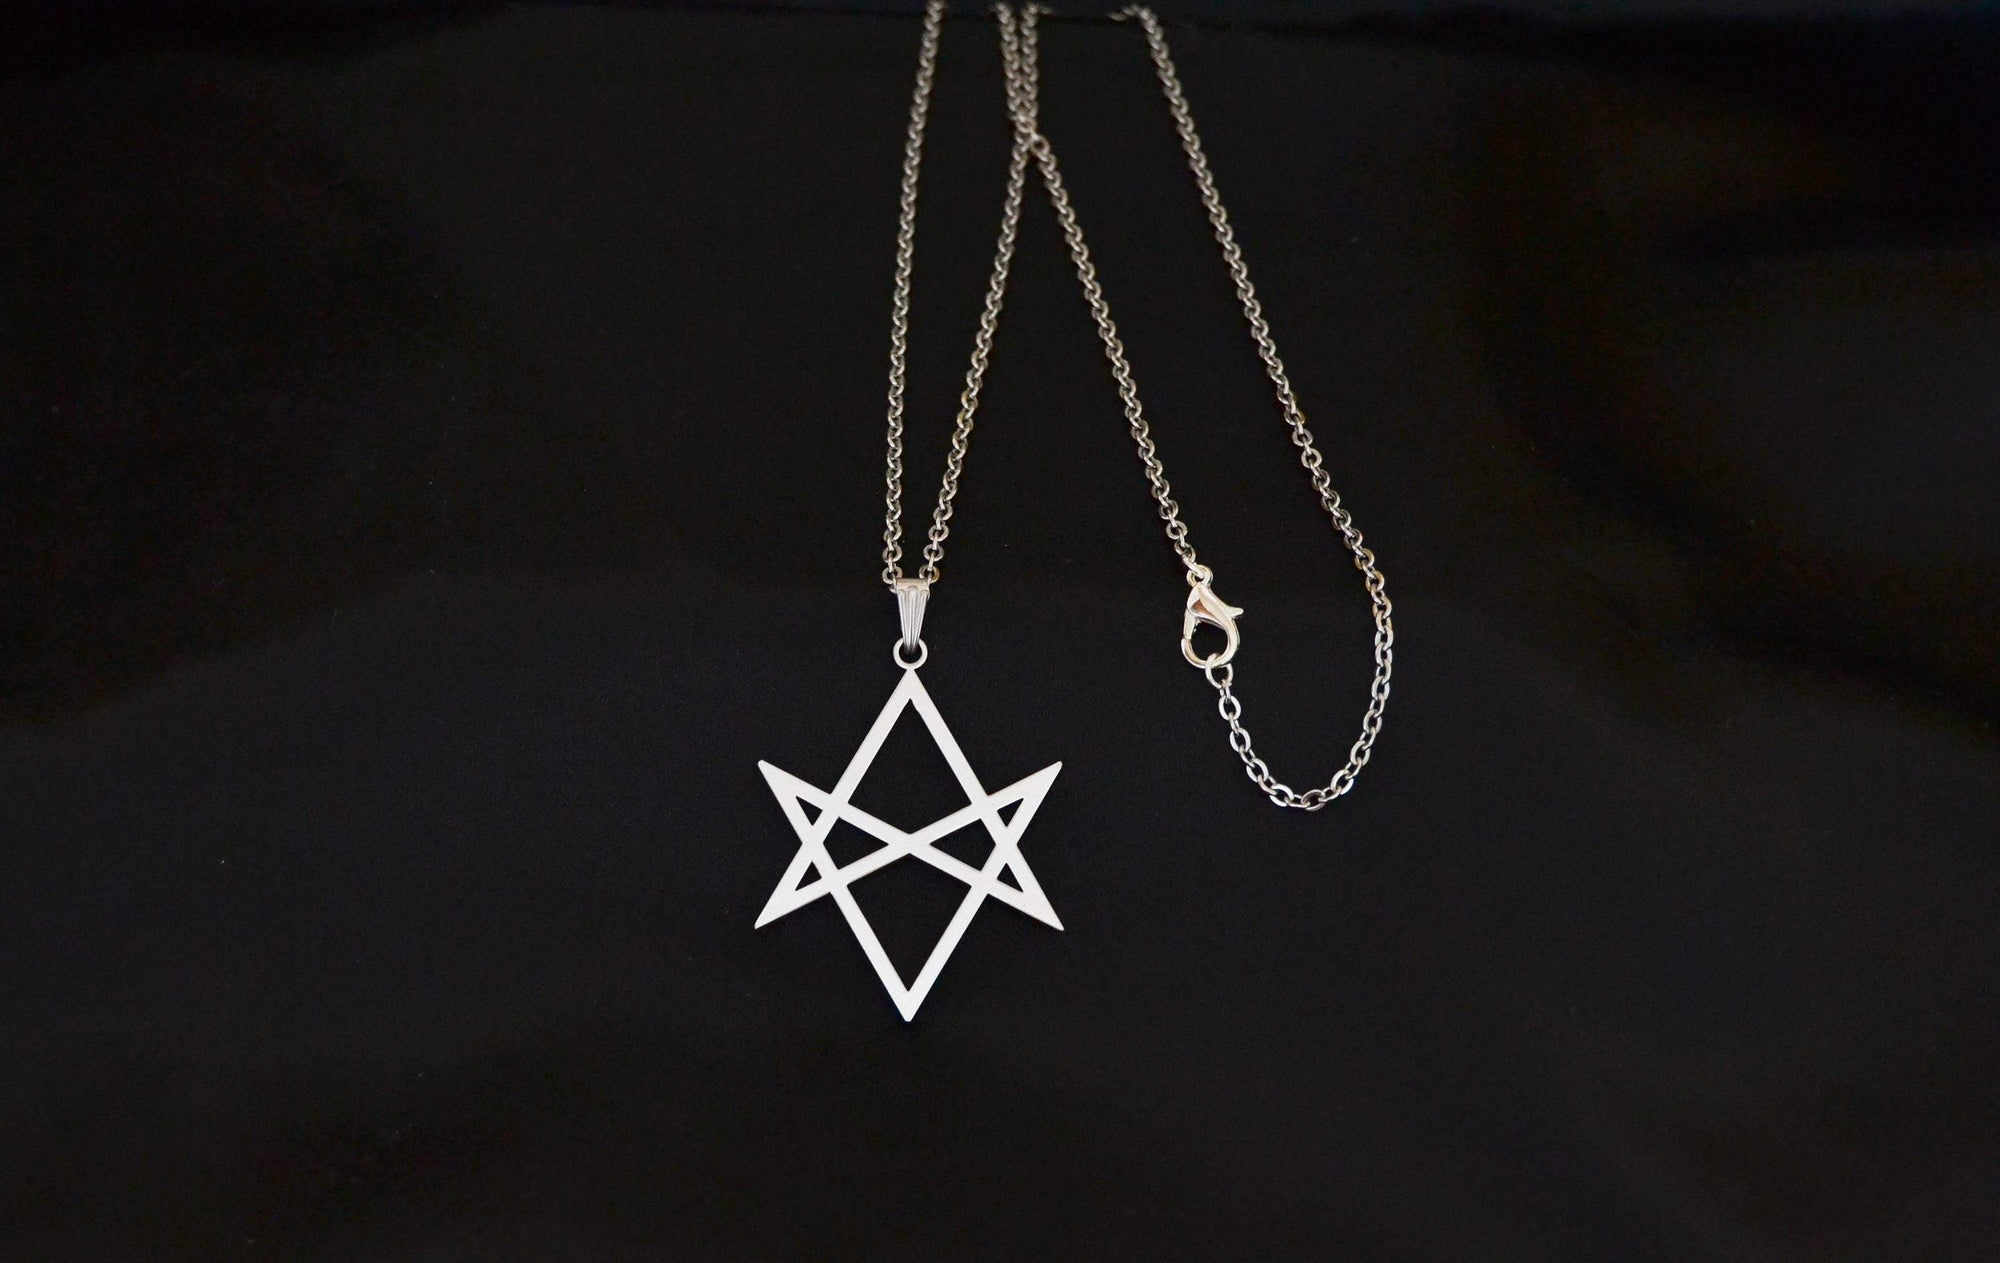 Wiccan Unicorsal Hexagram Pendant and Necklace Ancient Treasures Ancientreasures Viking Odin Thor Mjolnir Celtic Ancient Egypt Norse Norse Mythology